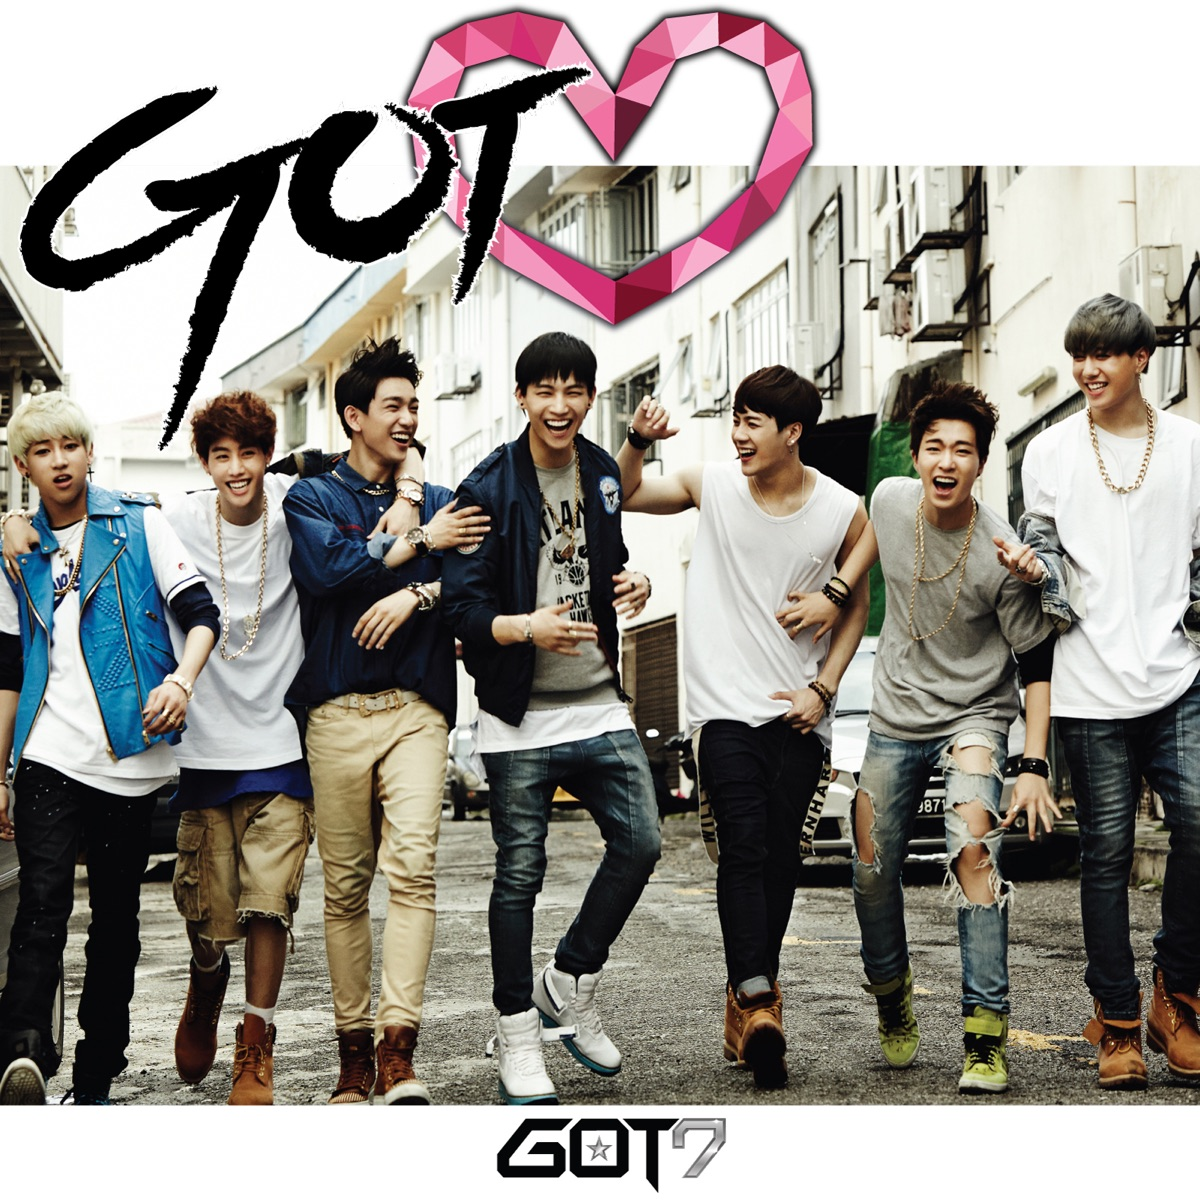 Got Love GOT7 CD cover